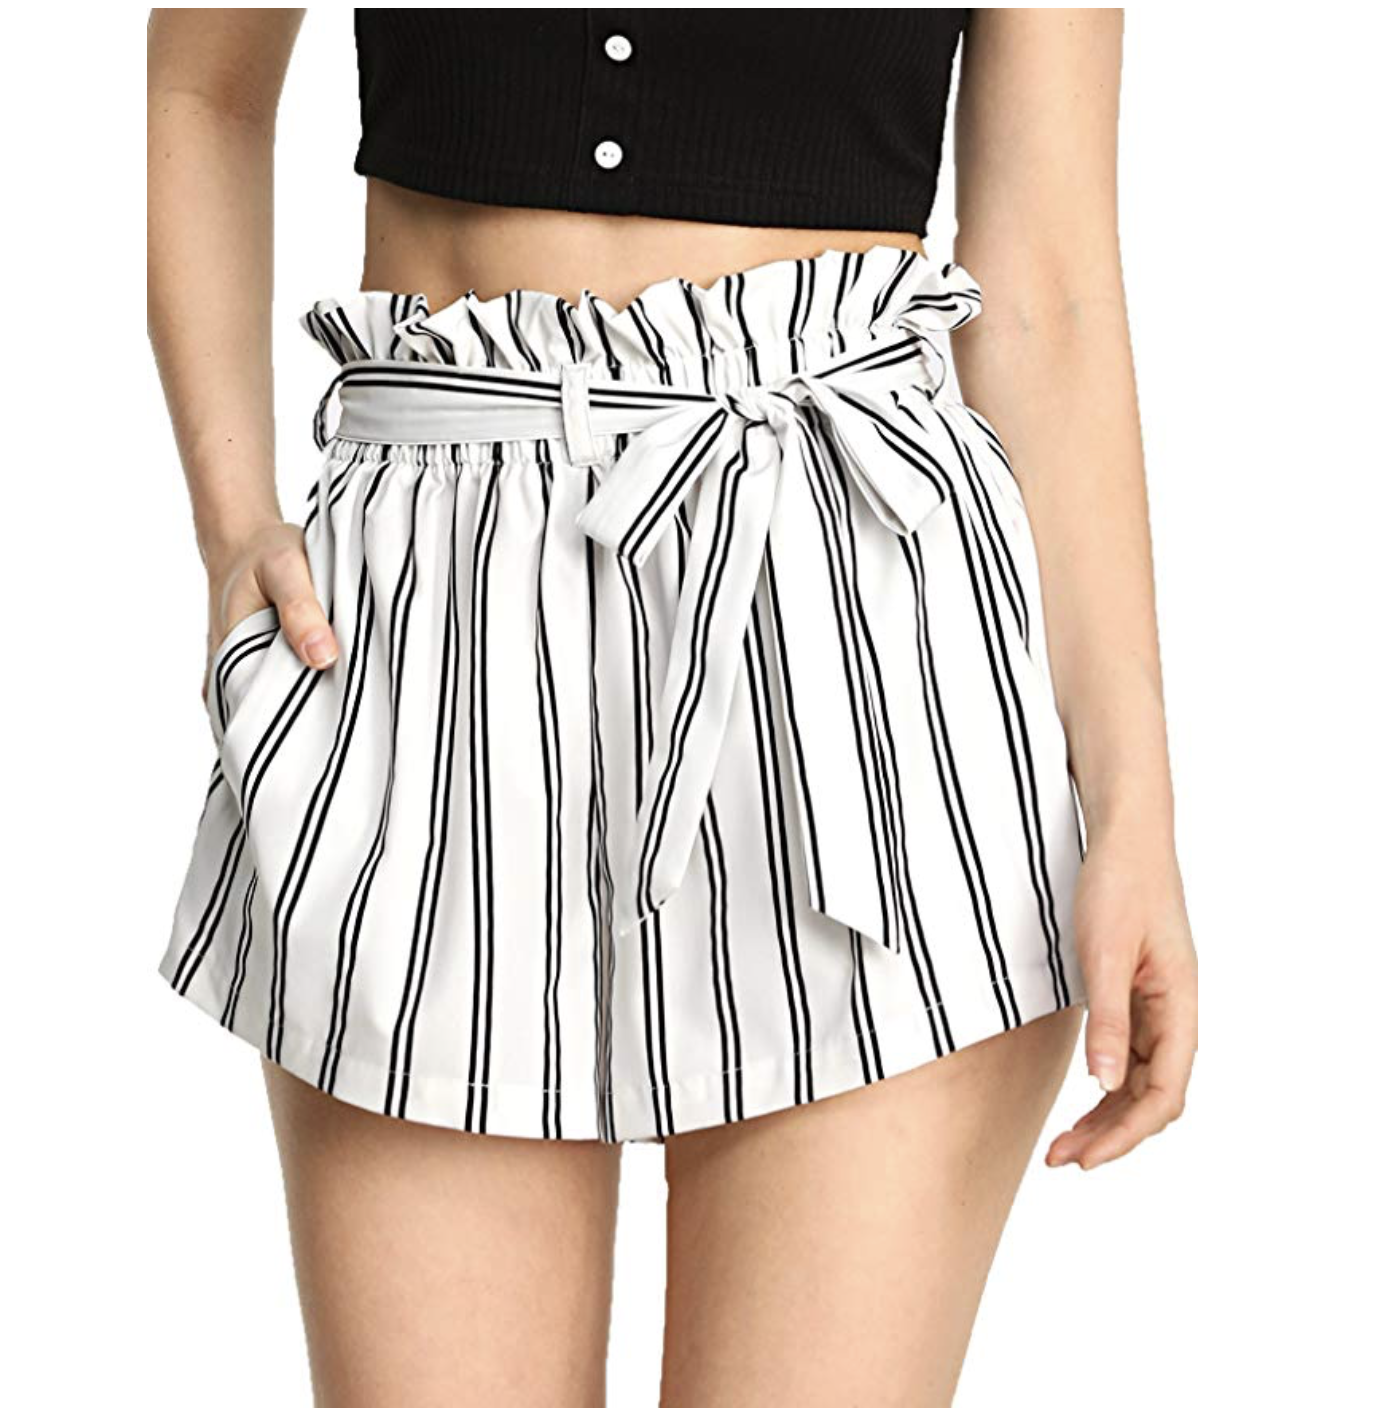 Amazon shopping ideas | Amazon sale | Amazon spring fashion | spring clothing | shorts | striped shorts